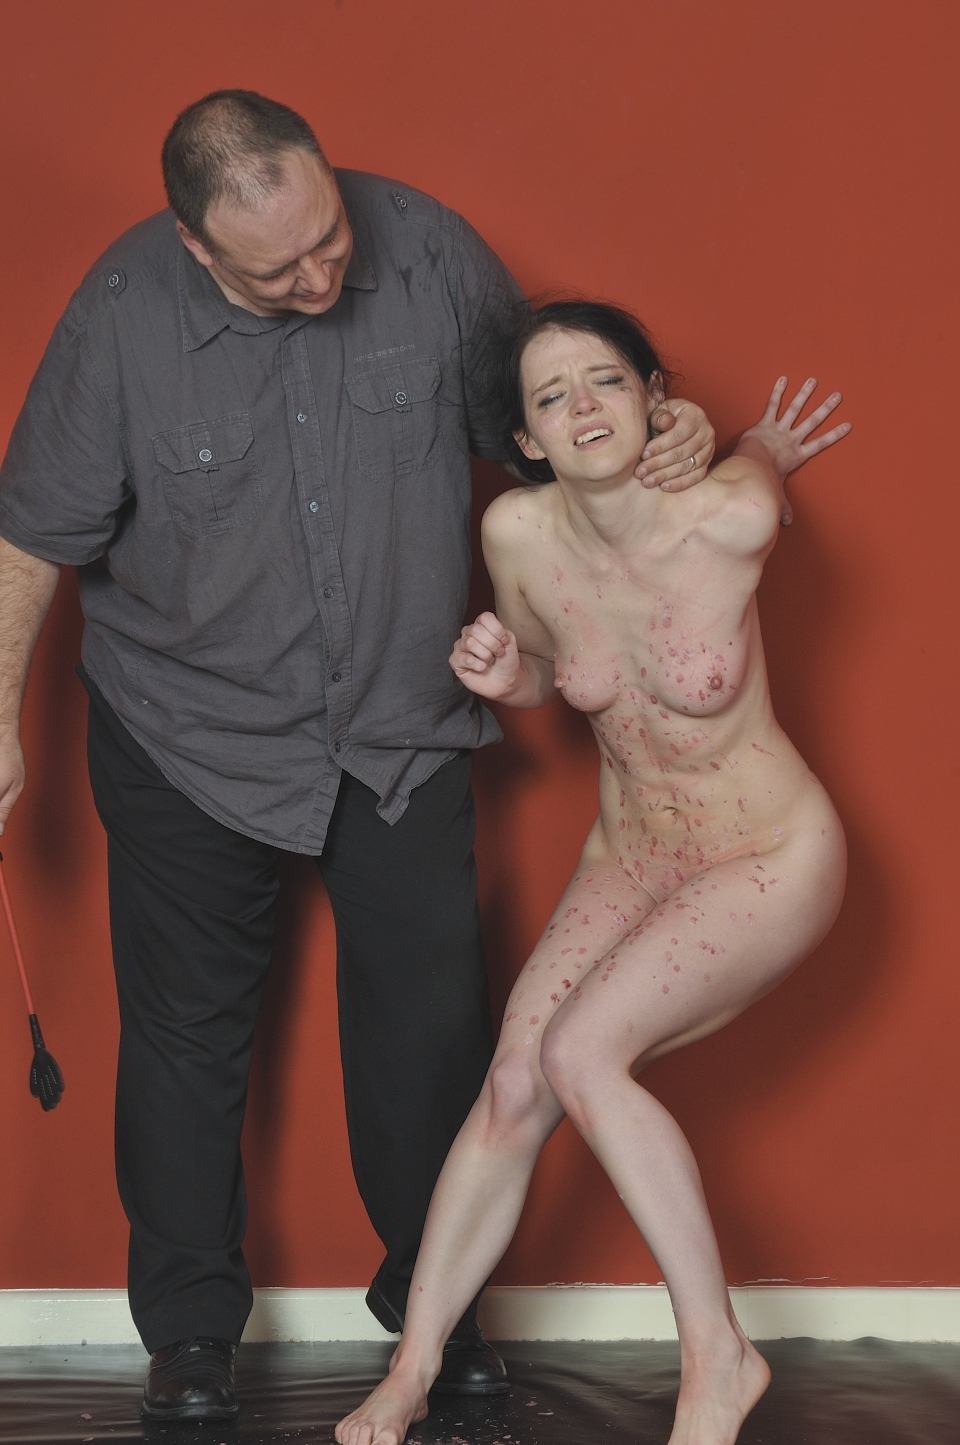 photos of supersexy girl and nude boy